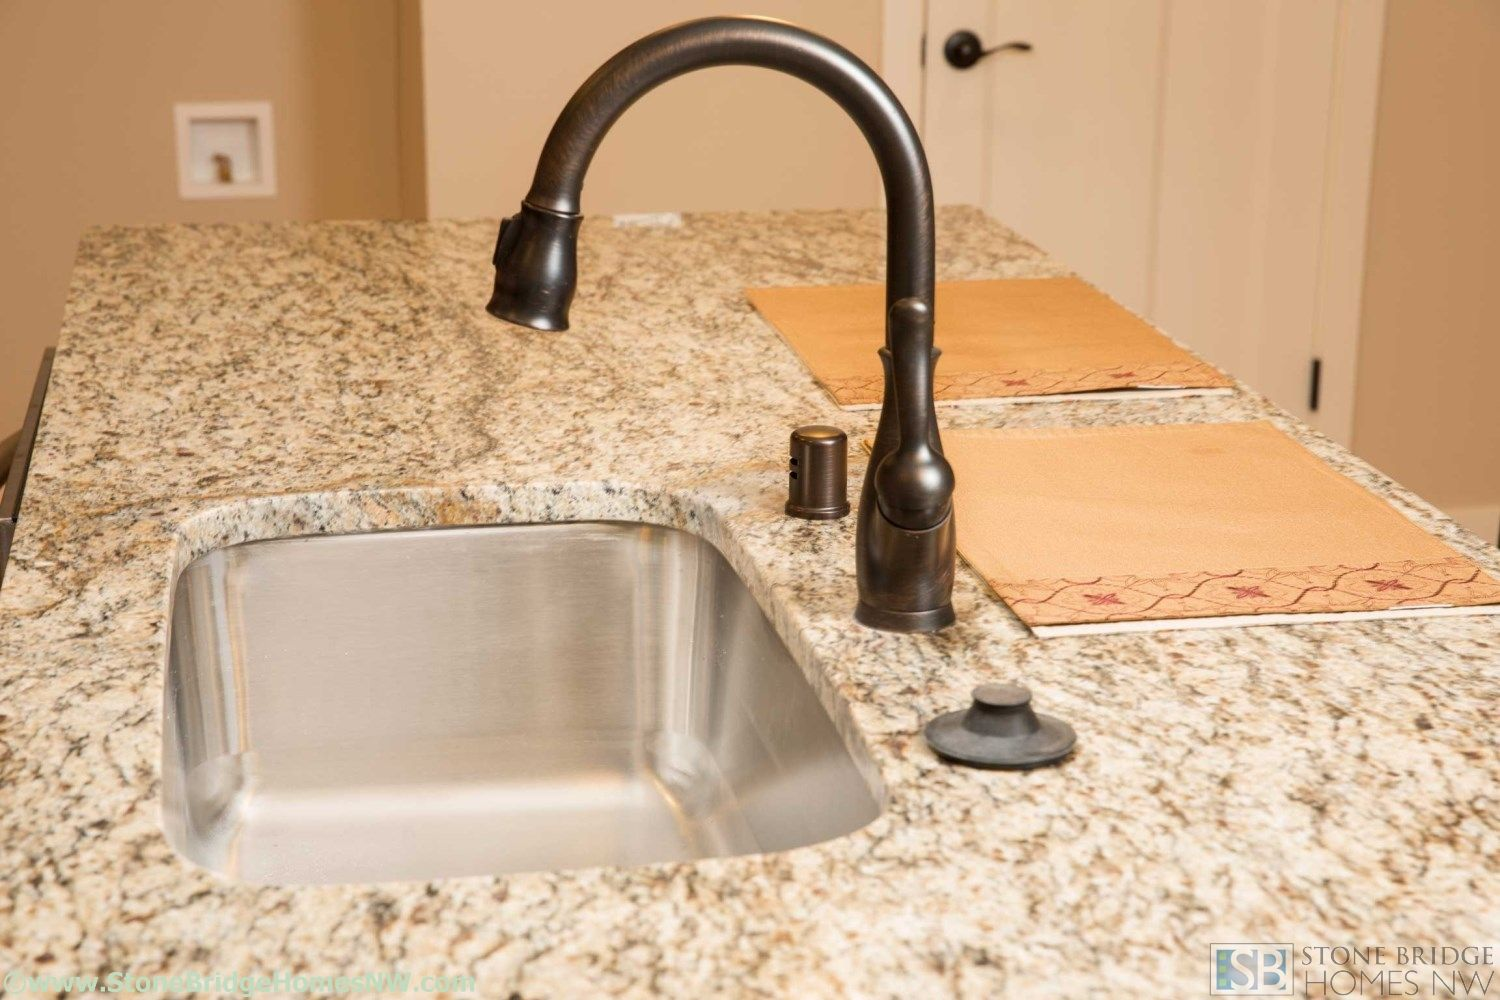 Oil Rubbed Bronze Kitchen Faucet With Stainless Steel Sink And